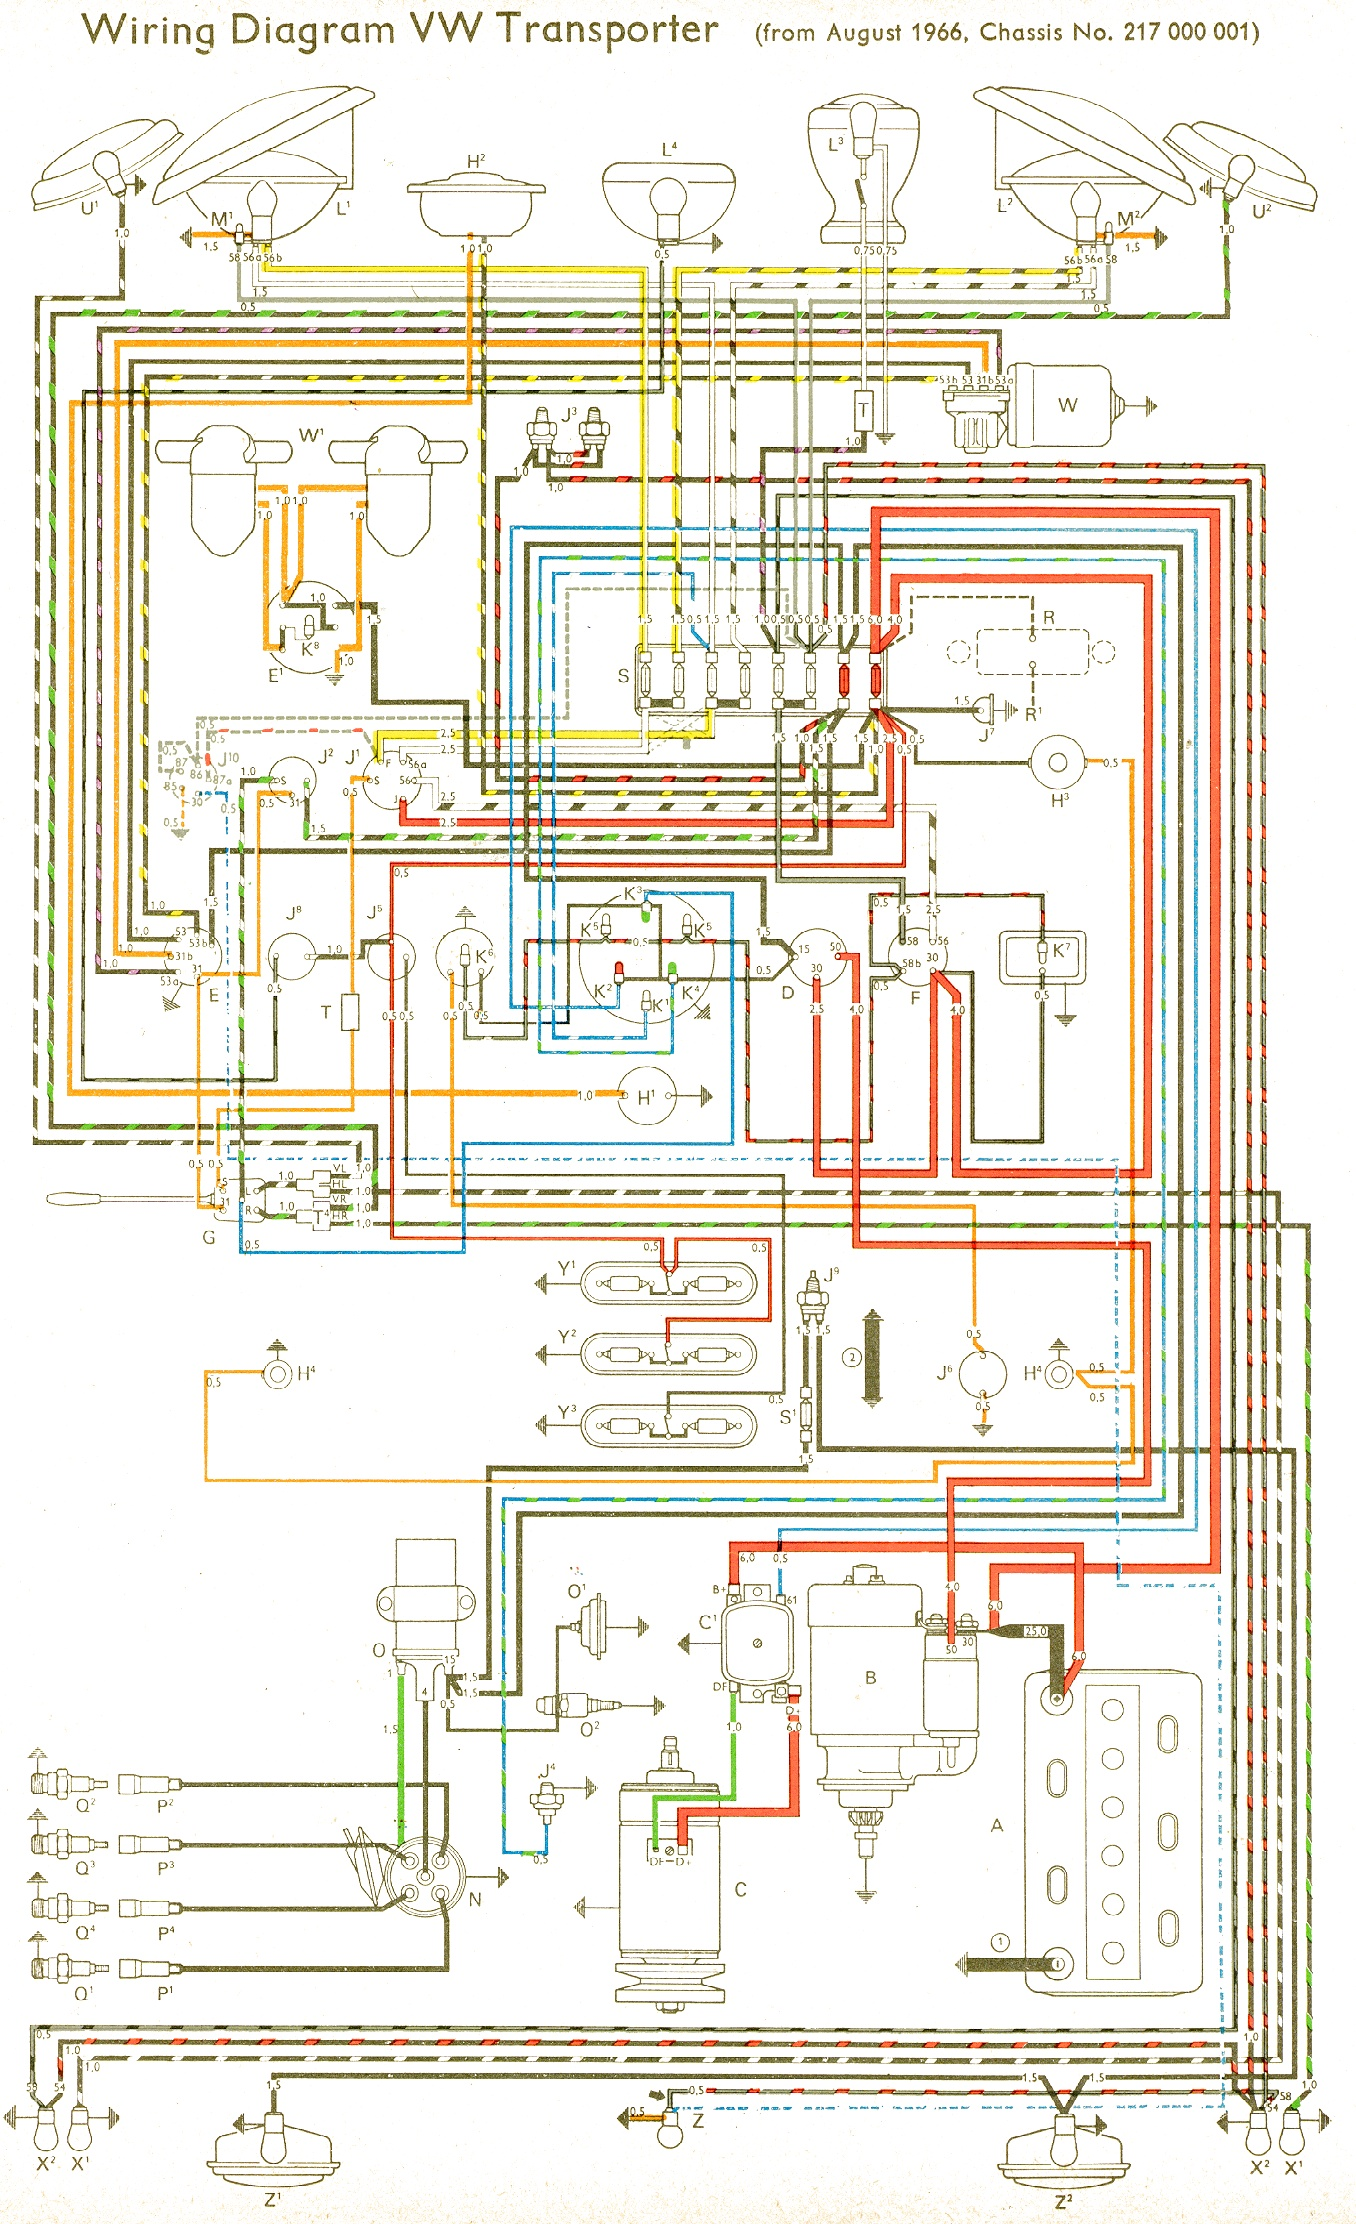 bus 66 1967 vw bus wiring diagram wiring diagram simonand vw wiring diagram at gsmportal.co